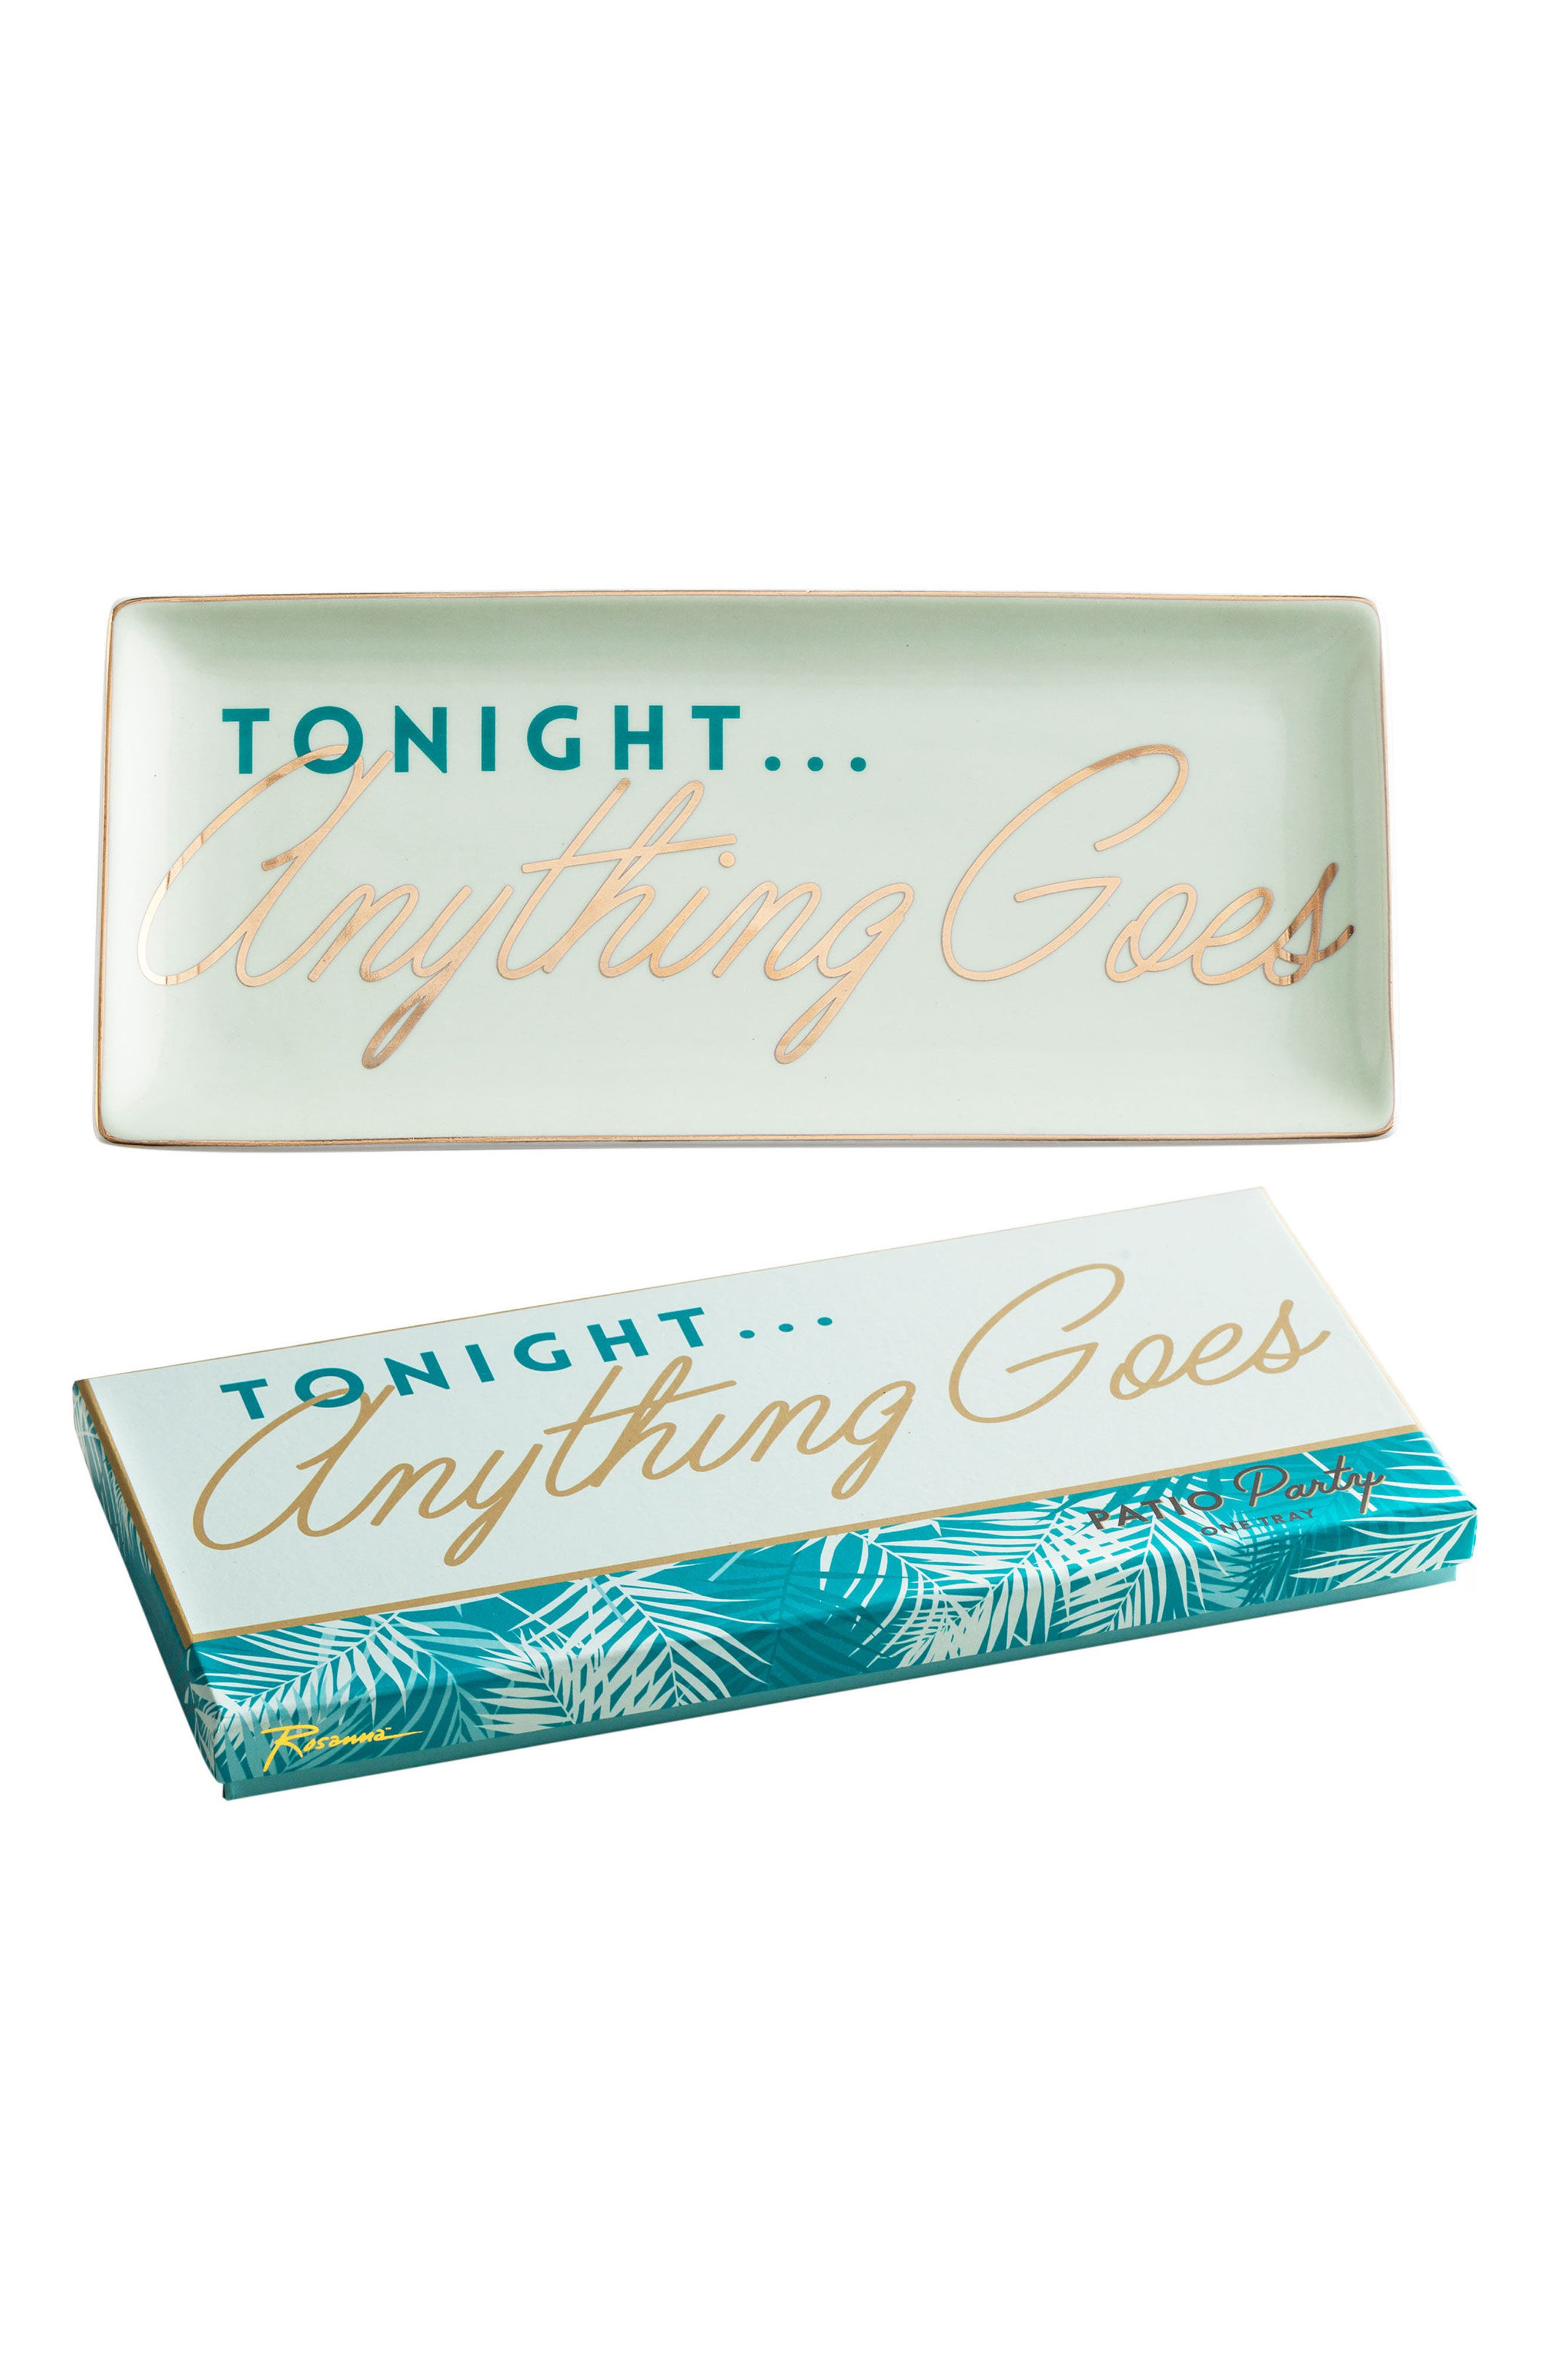 Anything Goes Porcelain Trinket Tray,                         Main,                         color, 100